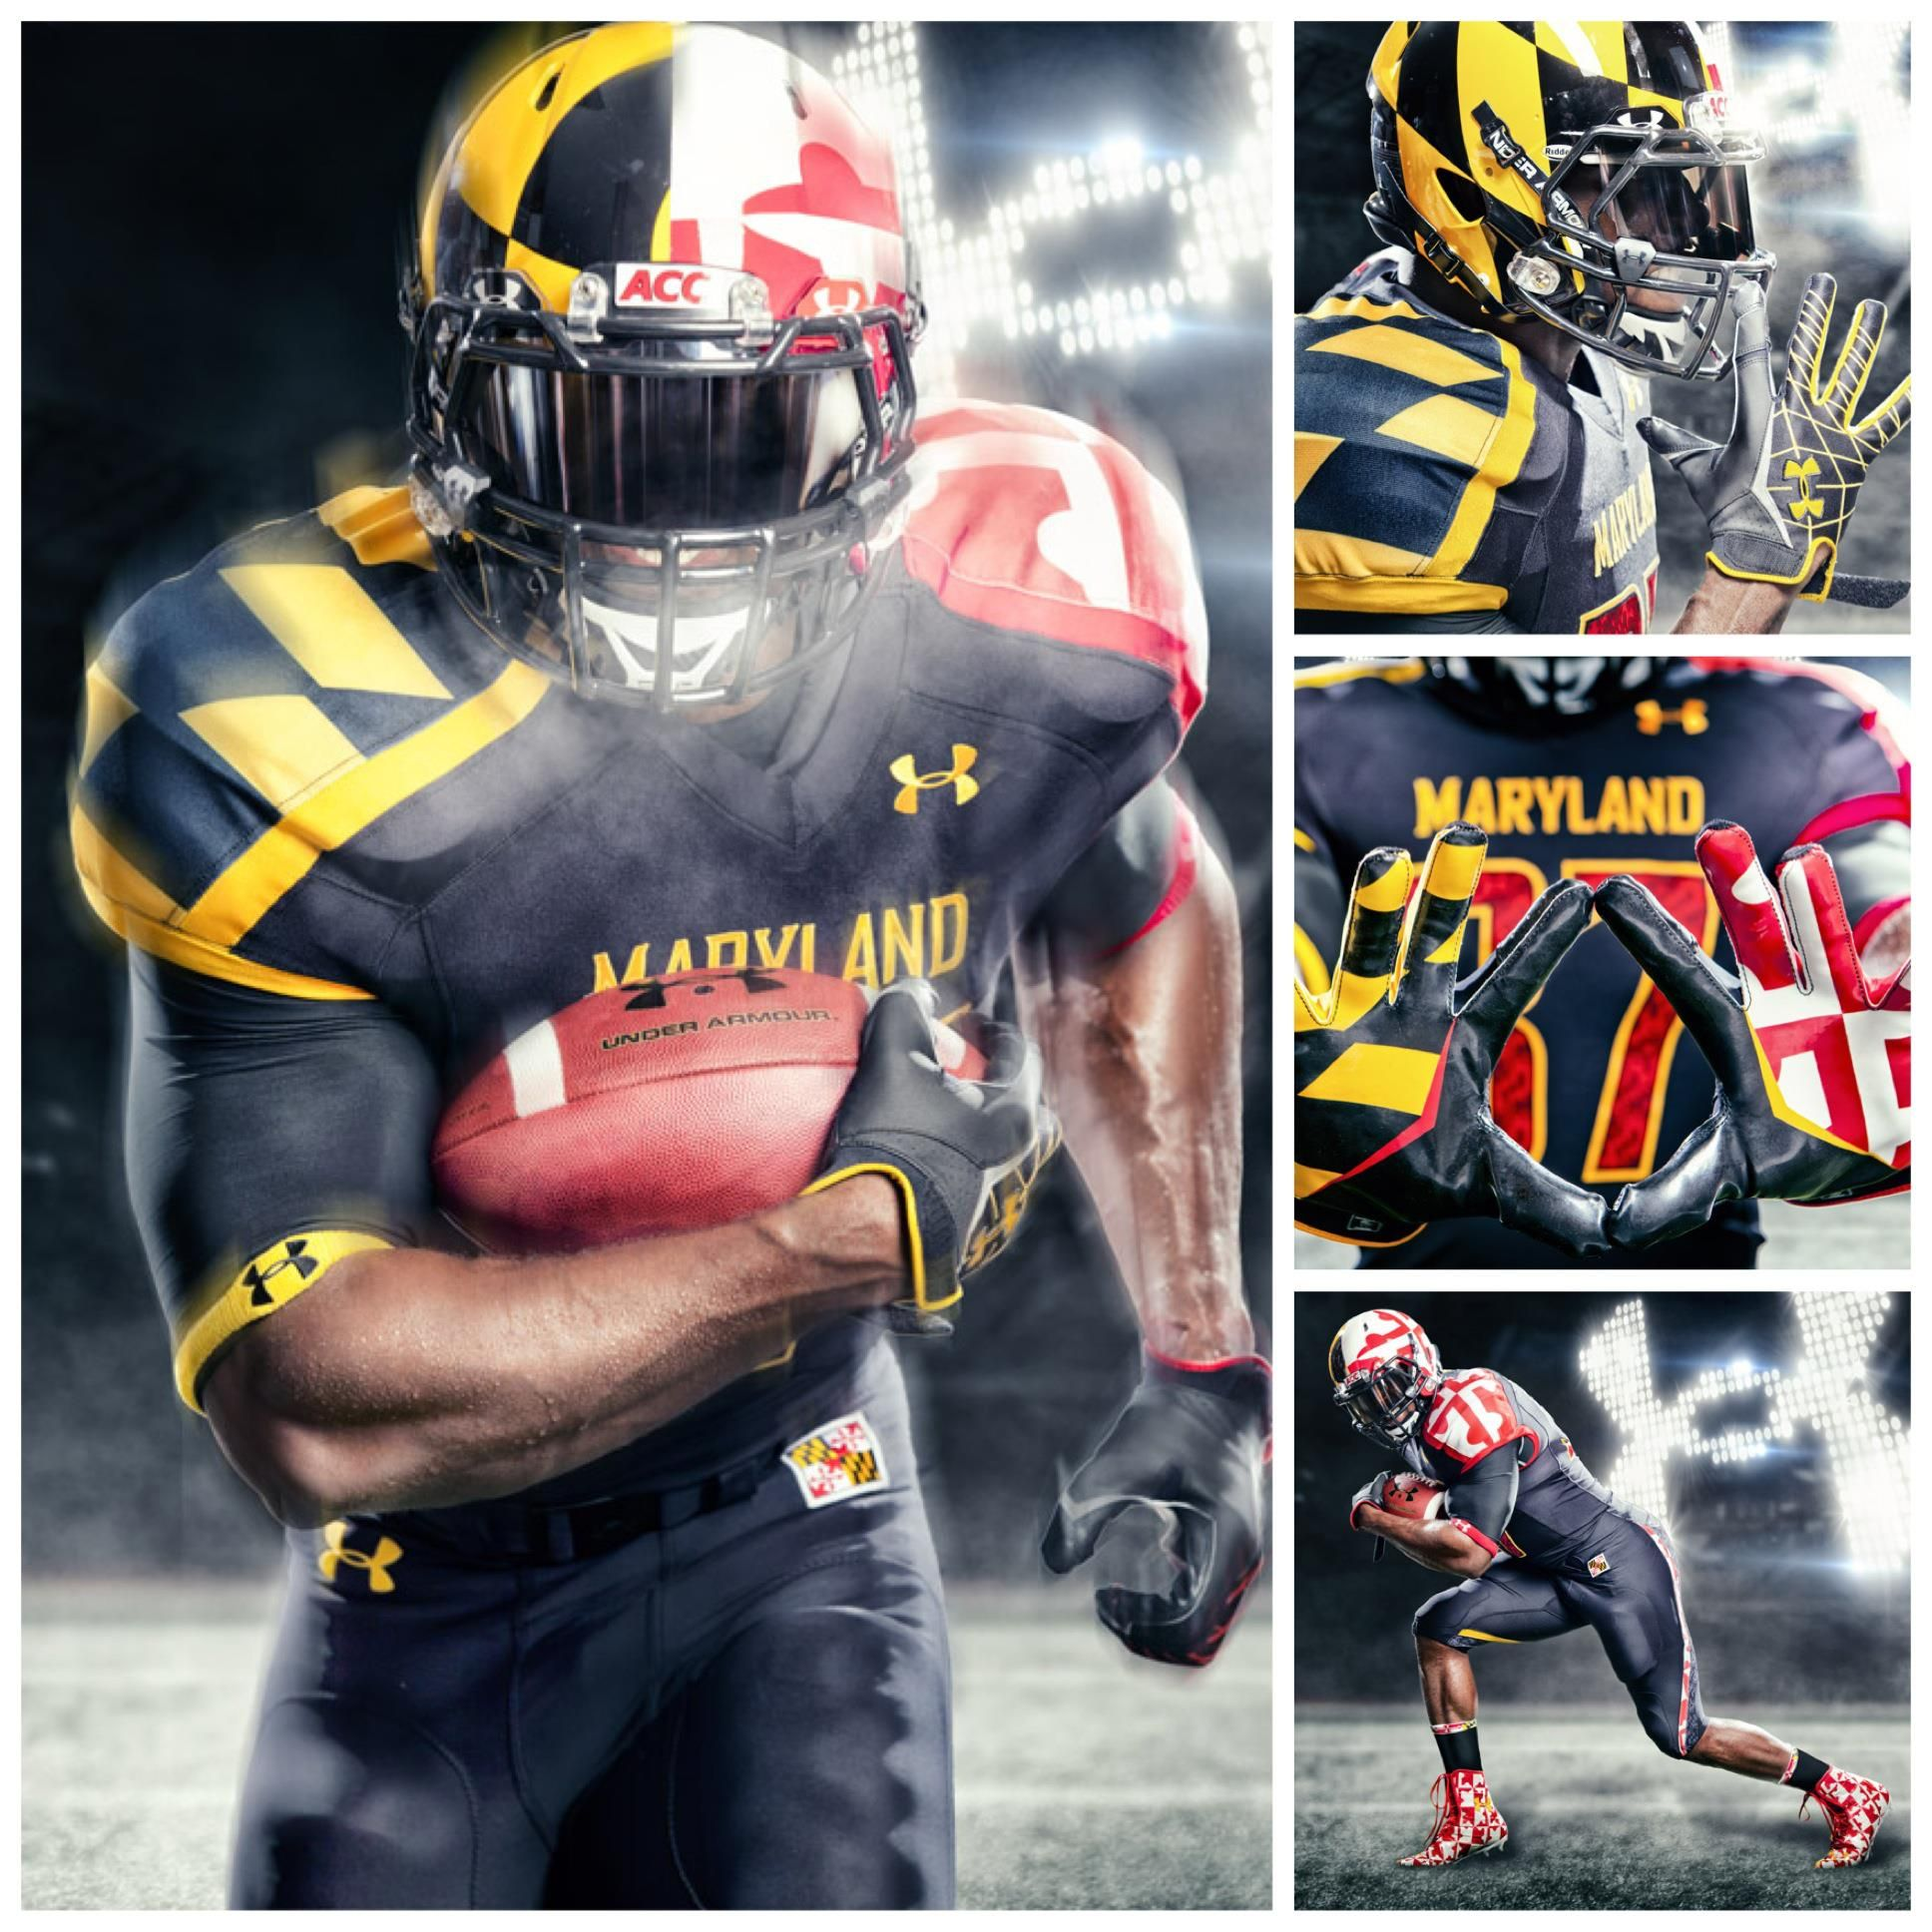 New University Of Maryland Football Pride Uniforms Love That Flag Go Terps Nfl Football Uniforms College Football Uniforms Football Uniforms